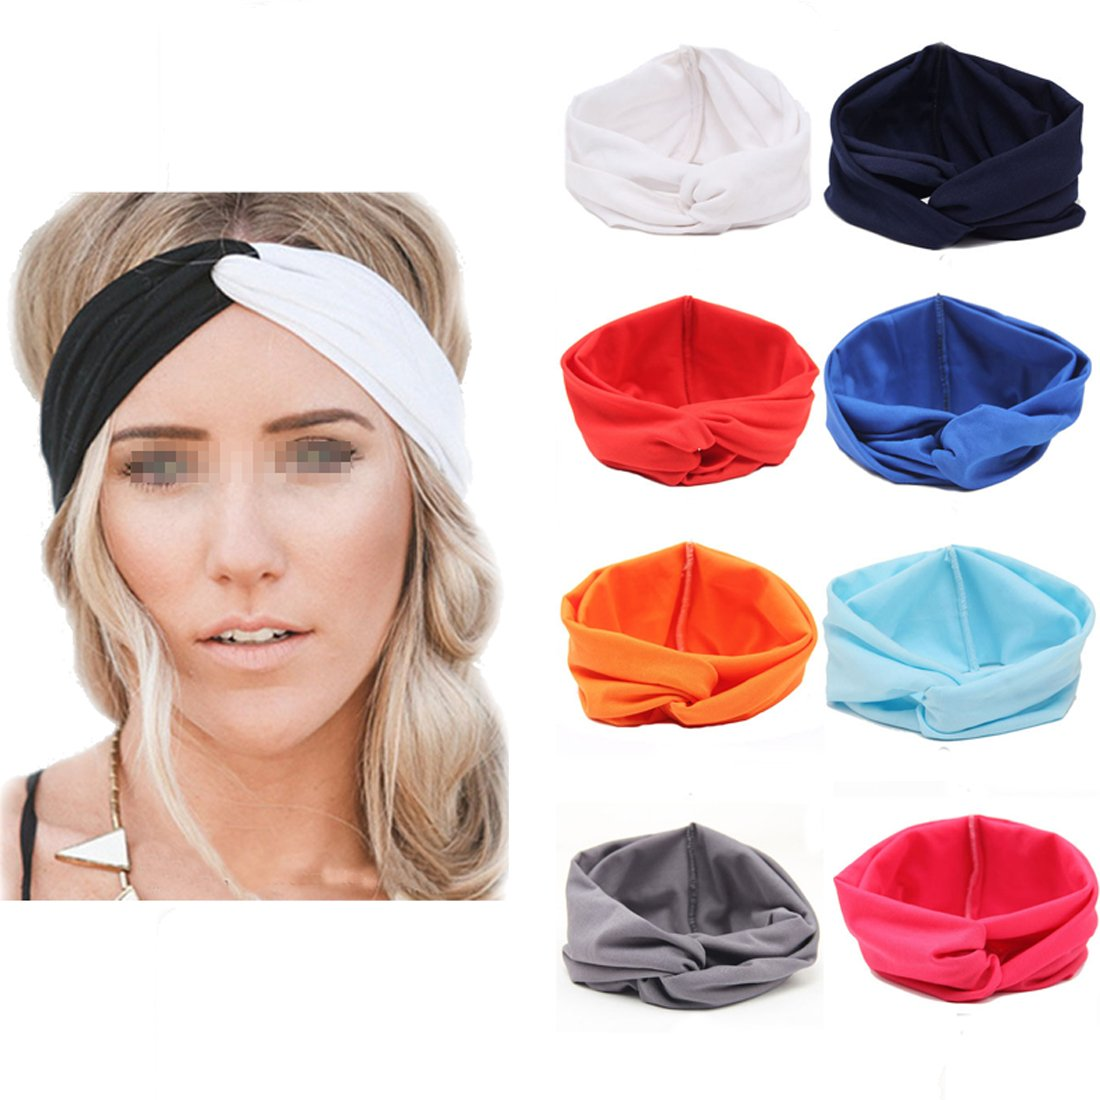 To acquire How to american wear apparel twist headband picture trends